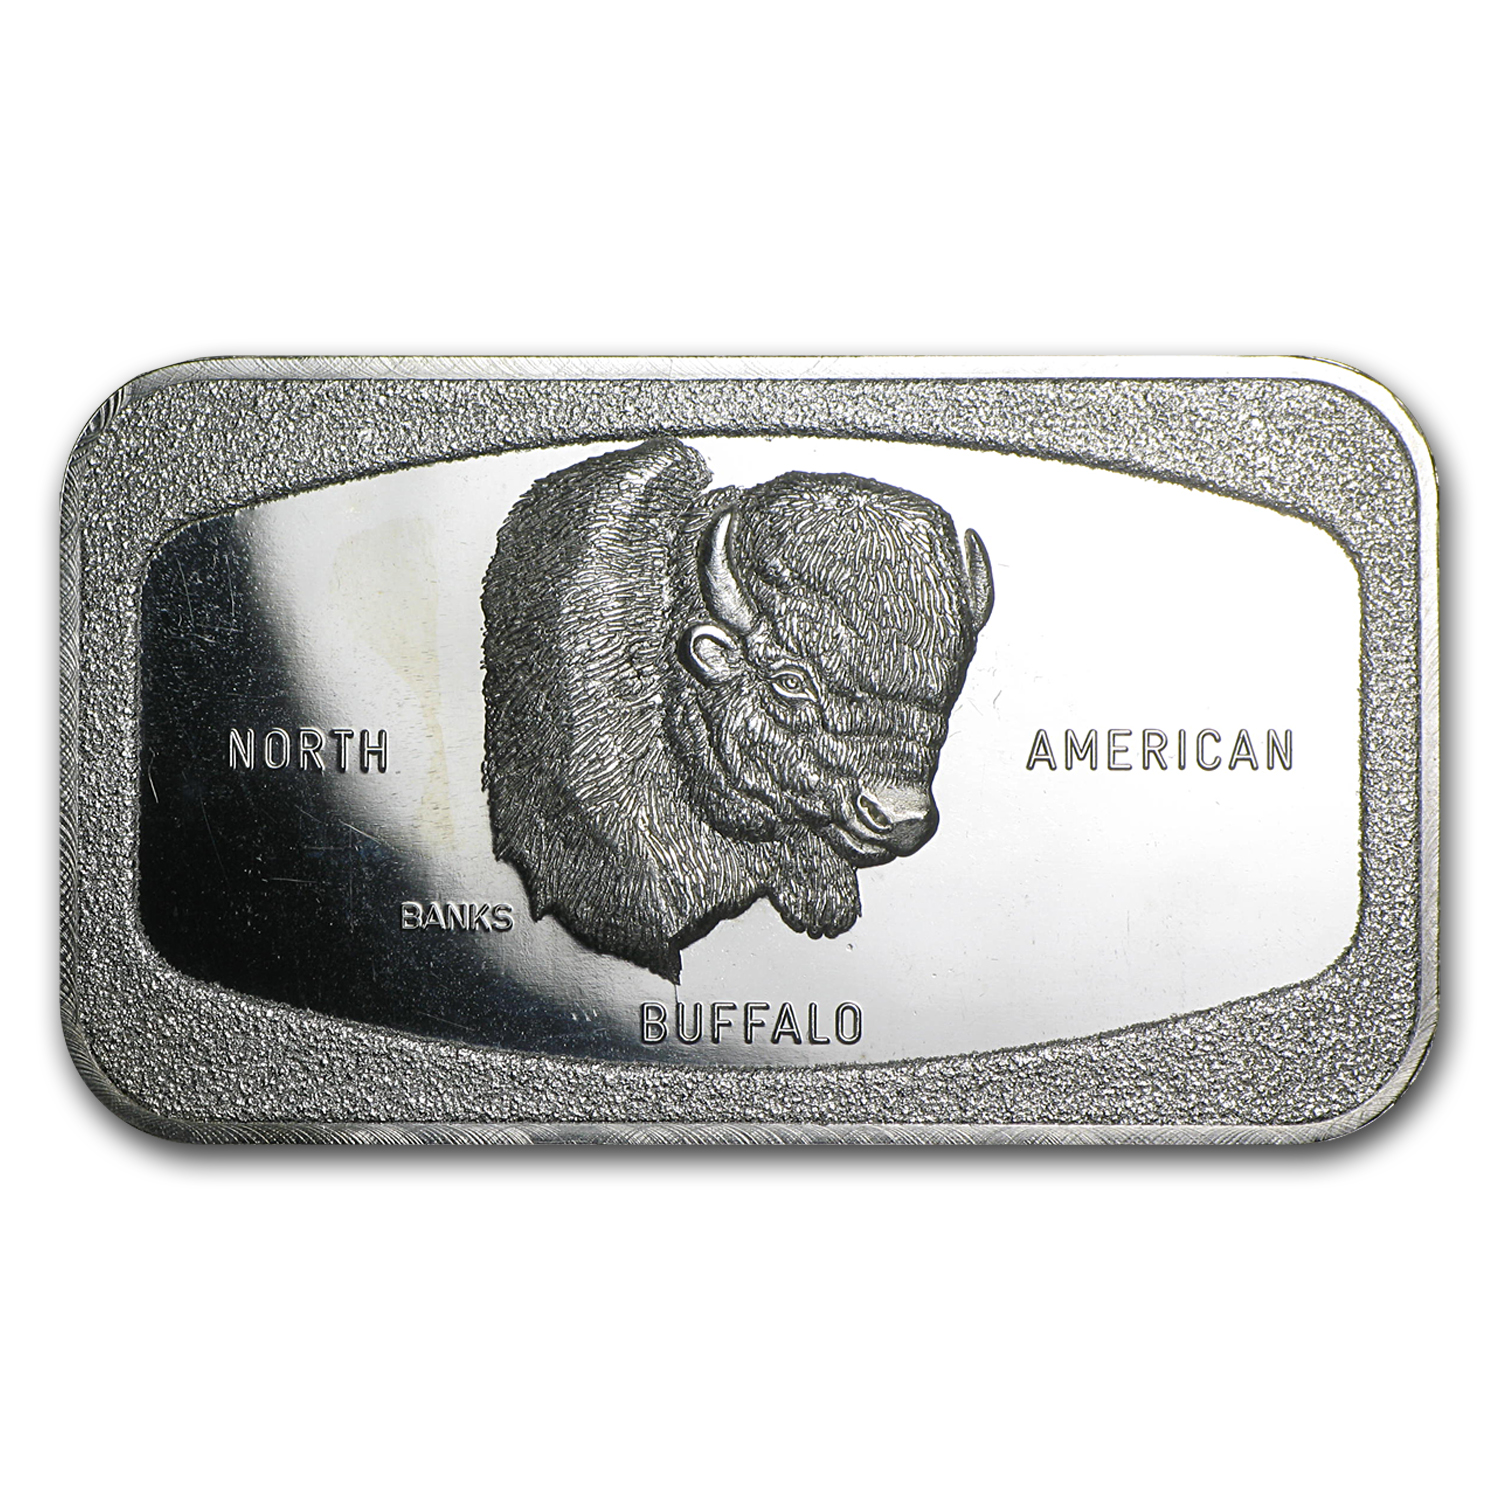 1 oz Silver Bar - Johnson Matthey & Mallory Western Mint, Buffalo